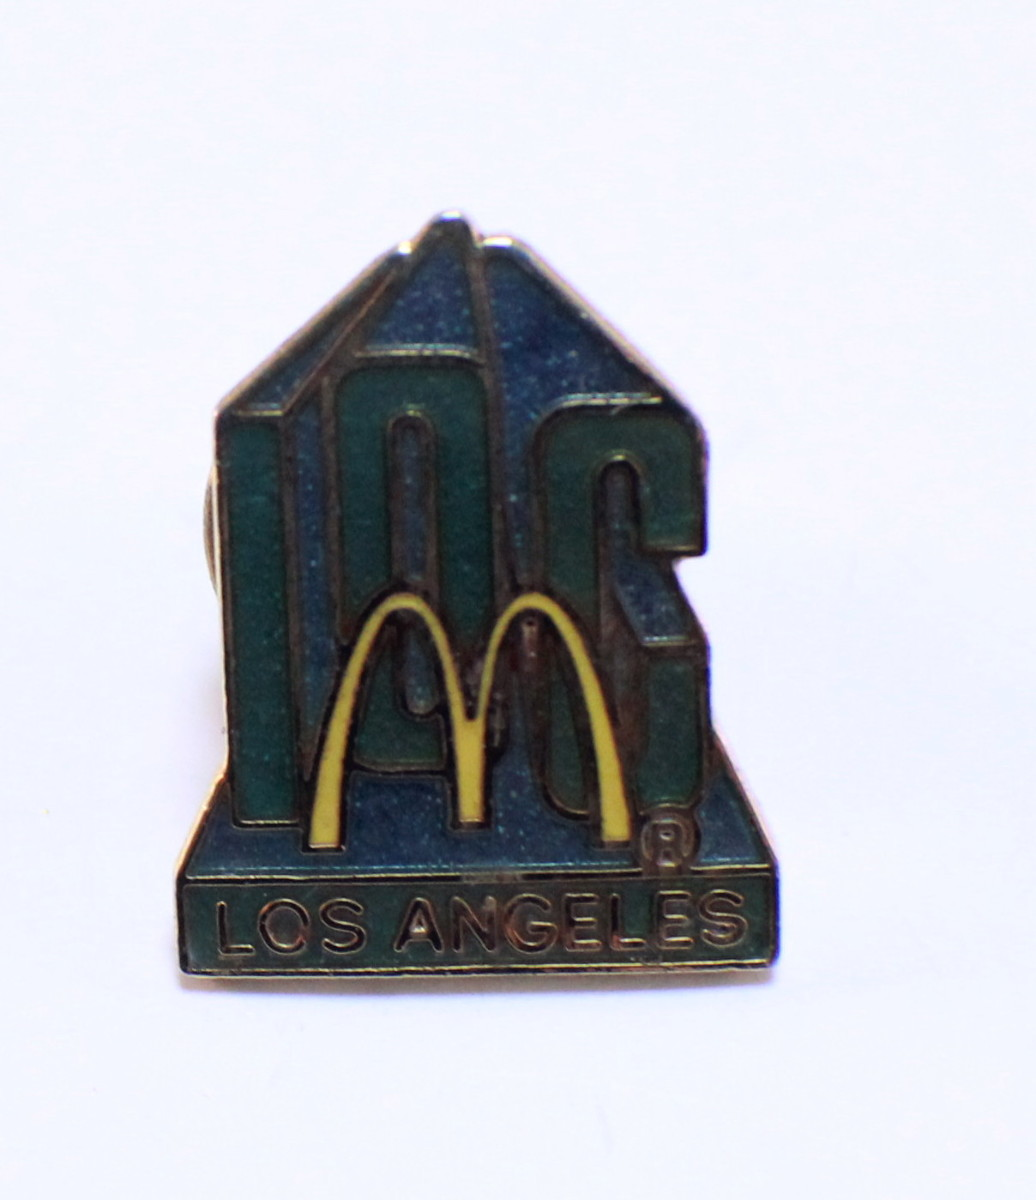 Mcdonald S Hat Pins: Mcdonalds Collector Hat Lapel Pin Los Angeles